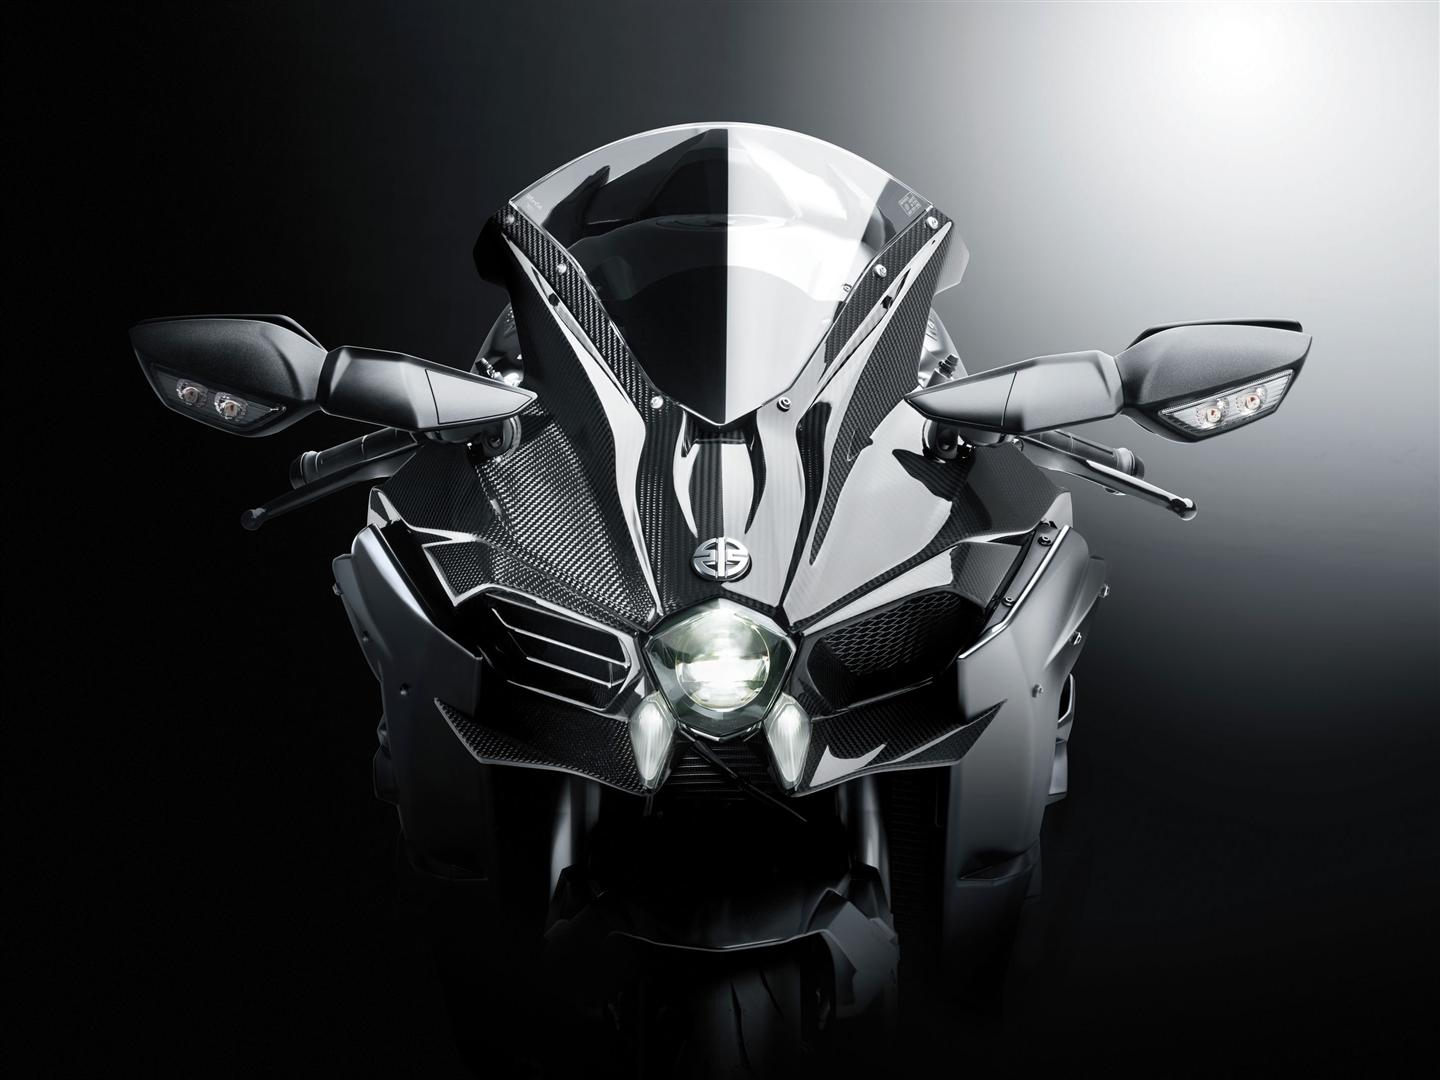 SCROLL DOWN Ninja H2 Carbon